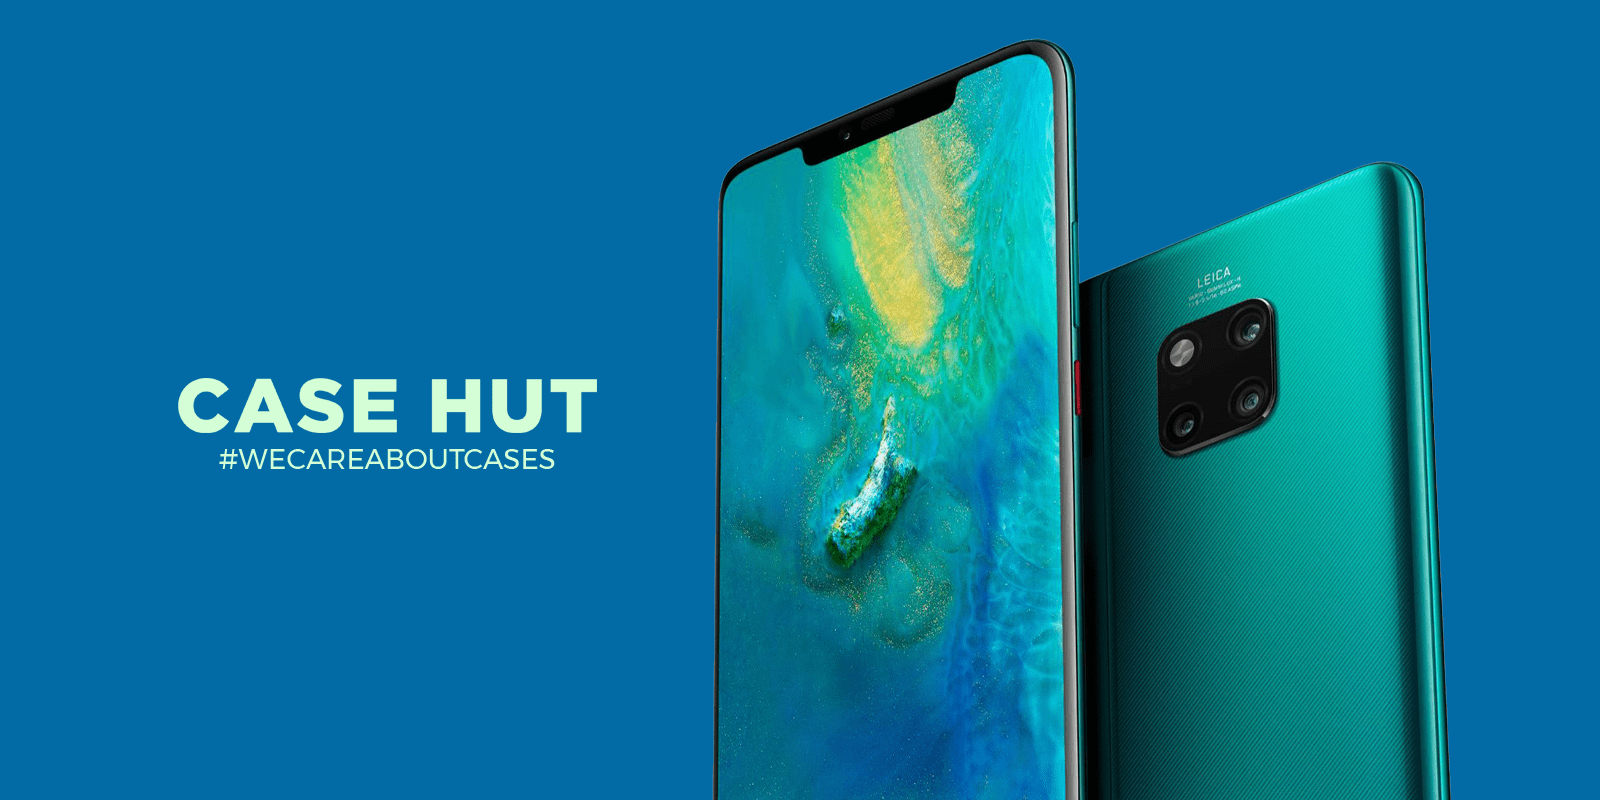 Top 4 Phone Cases for the Huawei Mate 20 Pro